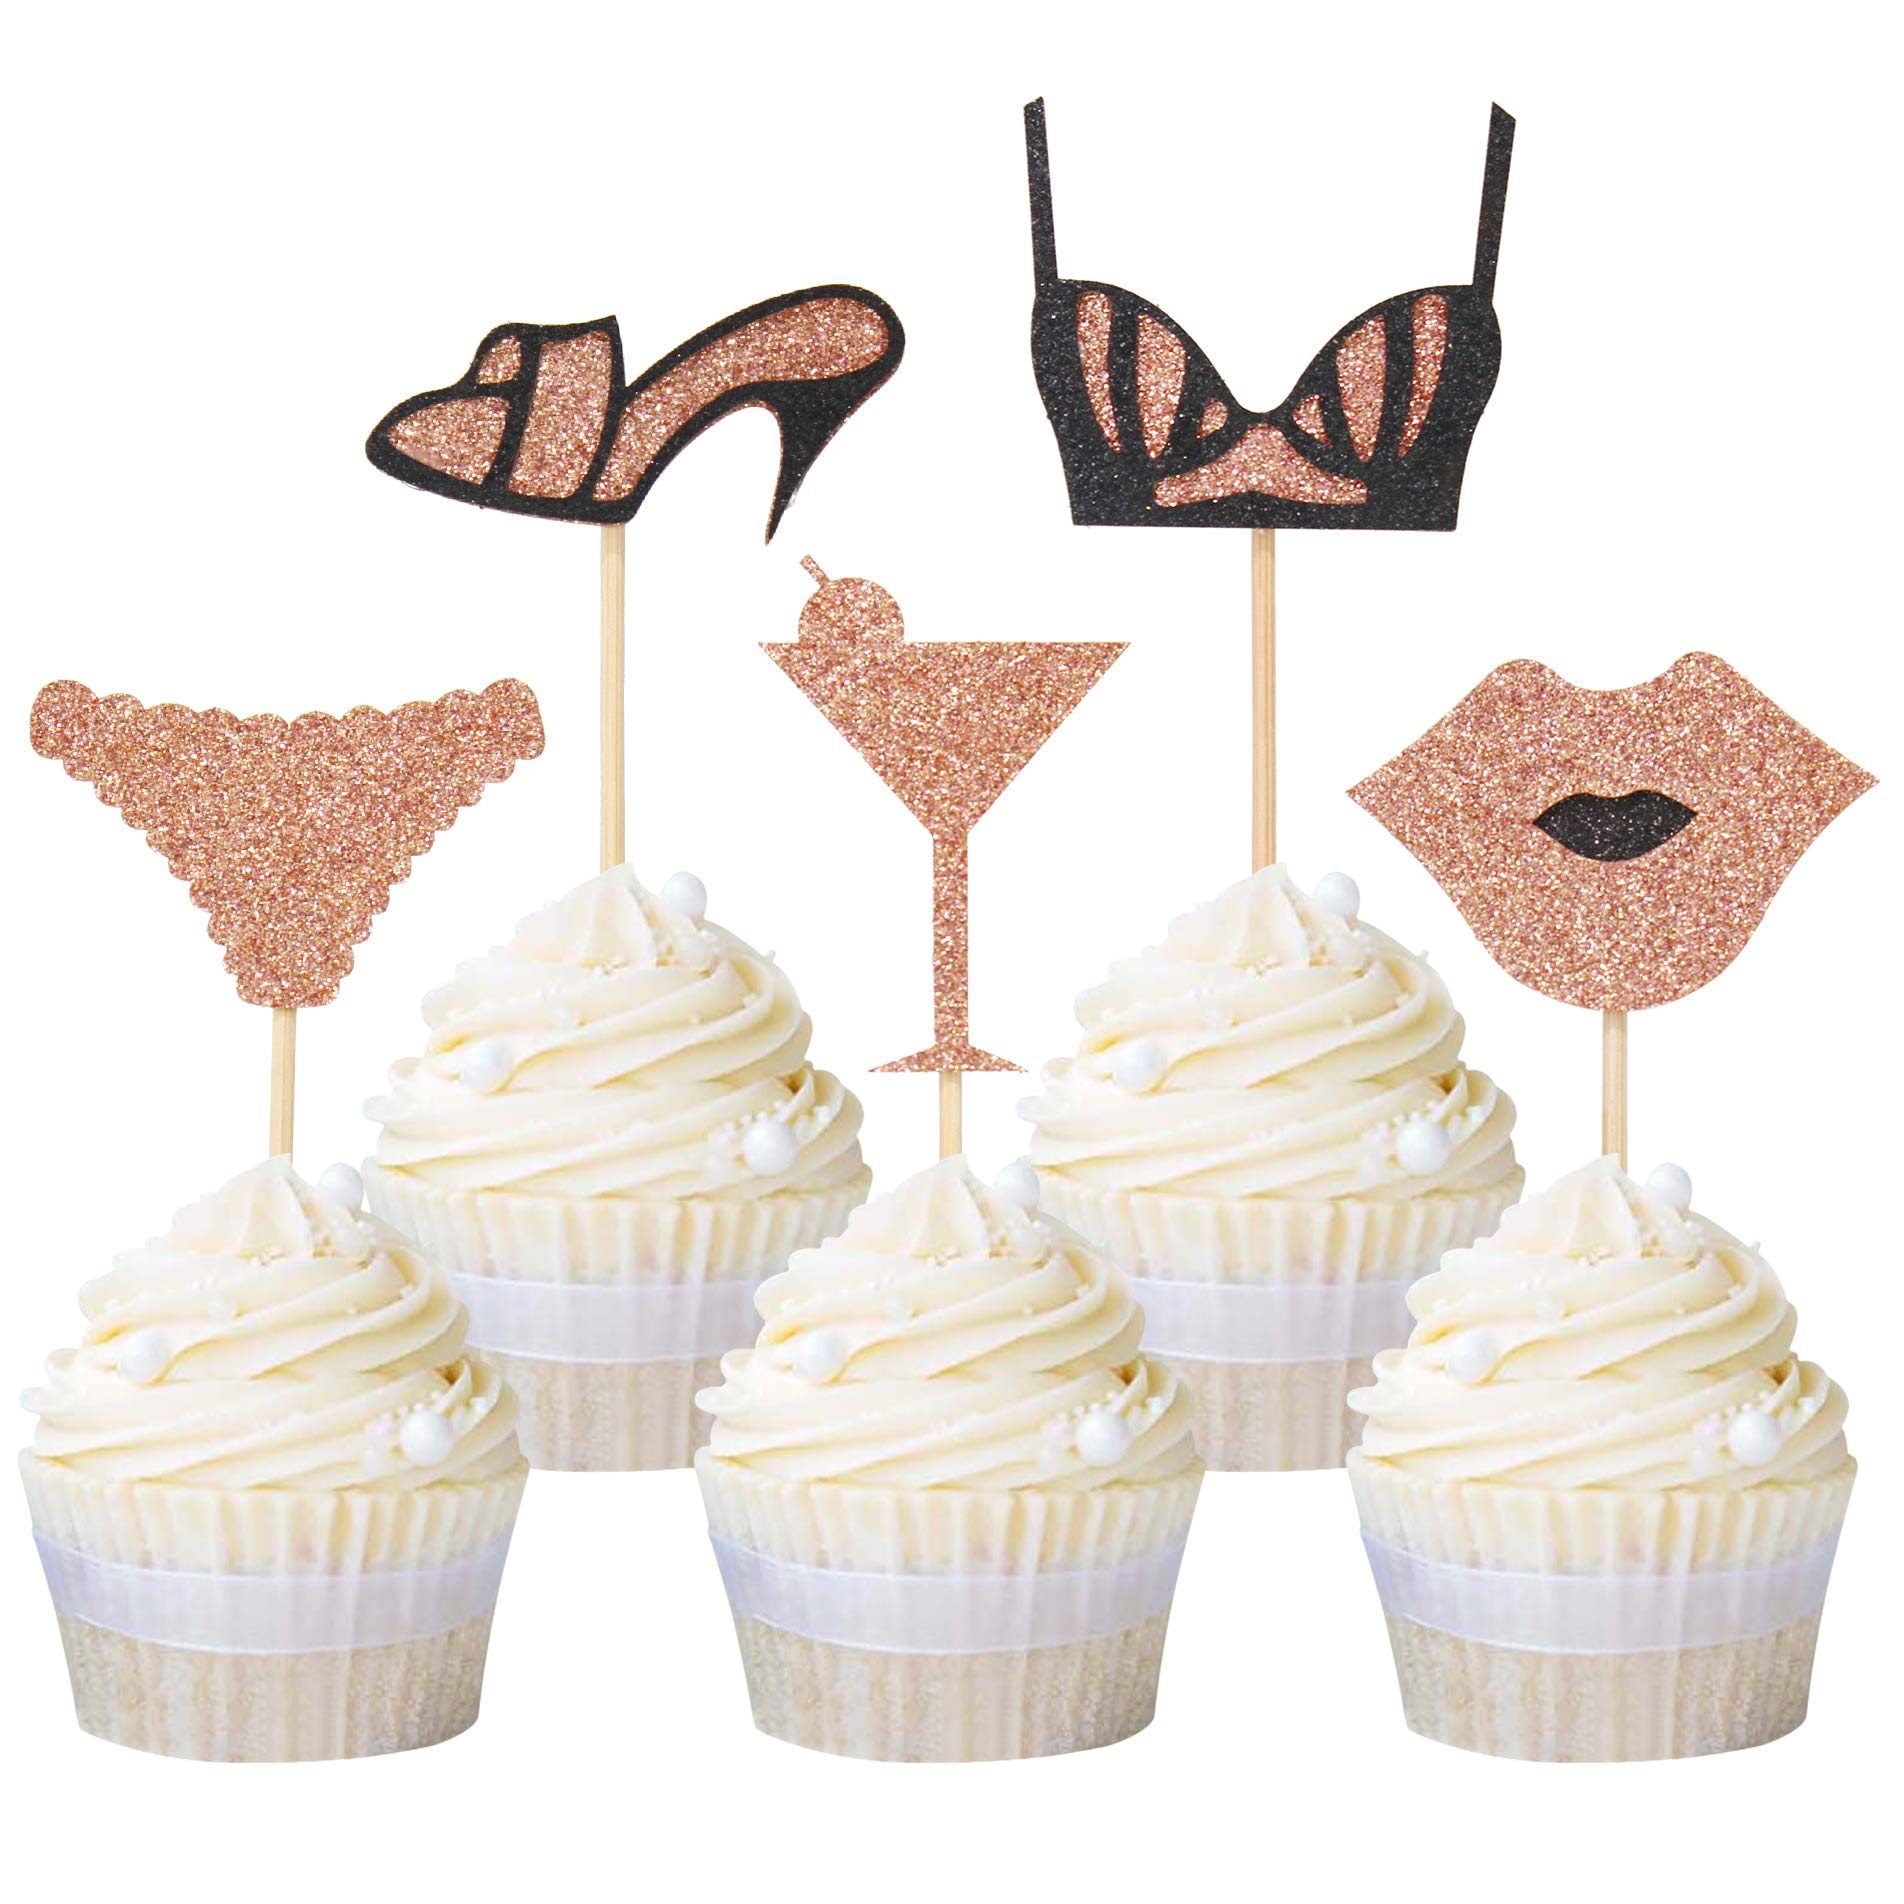 Ercadio High Heel Underpants Bra Lips Cupcake Toppers Glitter Cupcake Topper Food Picks Bachelorette Birthday Party…